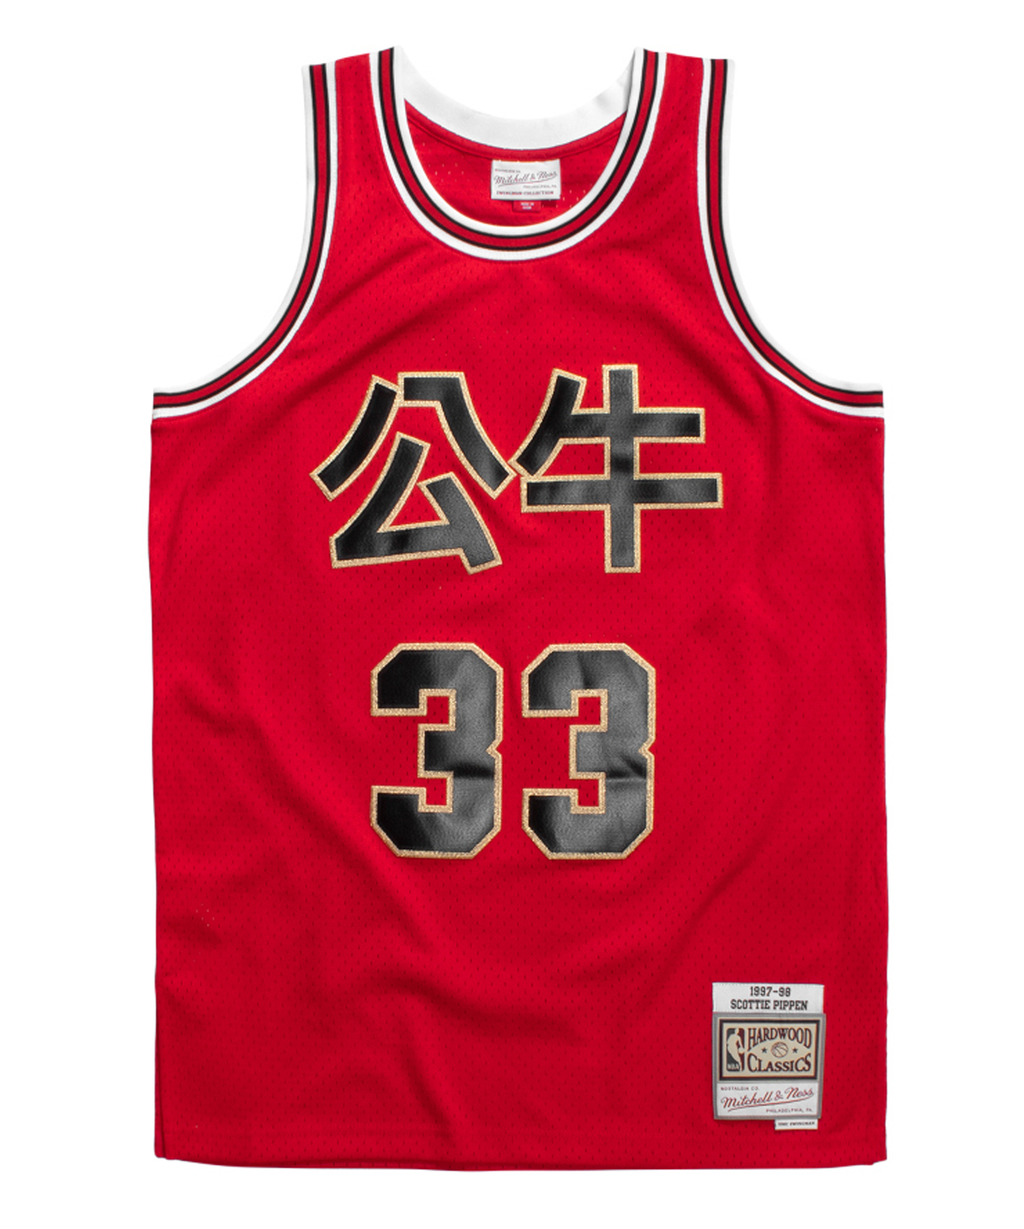 Scottie Pippen Chicago Bulls 1997-1998 CNY Swingman Jersey